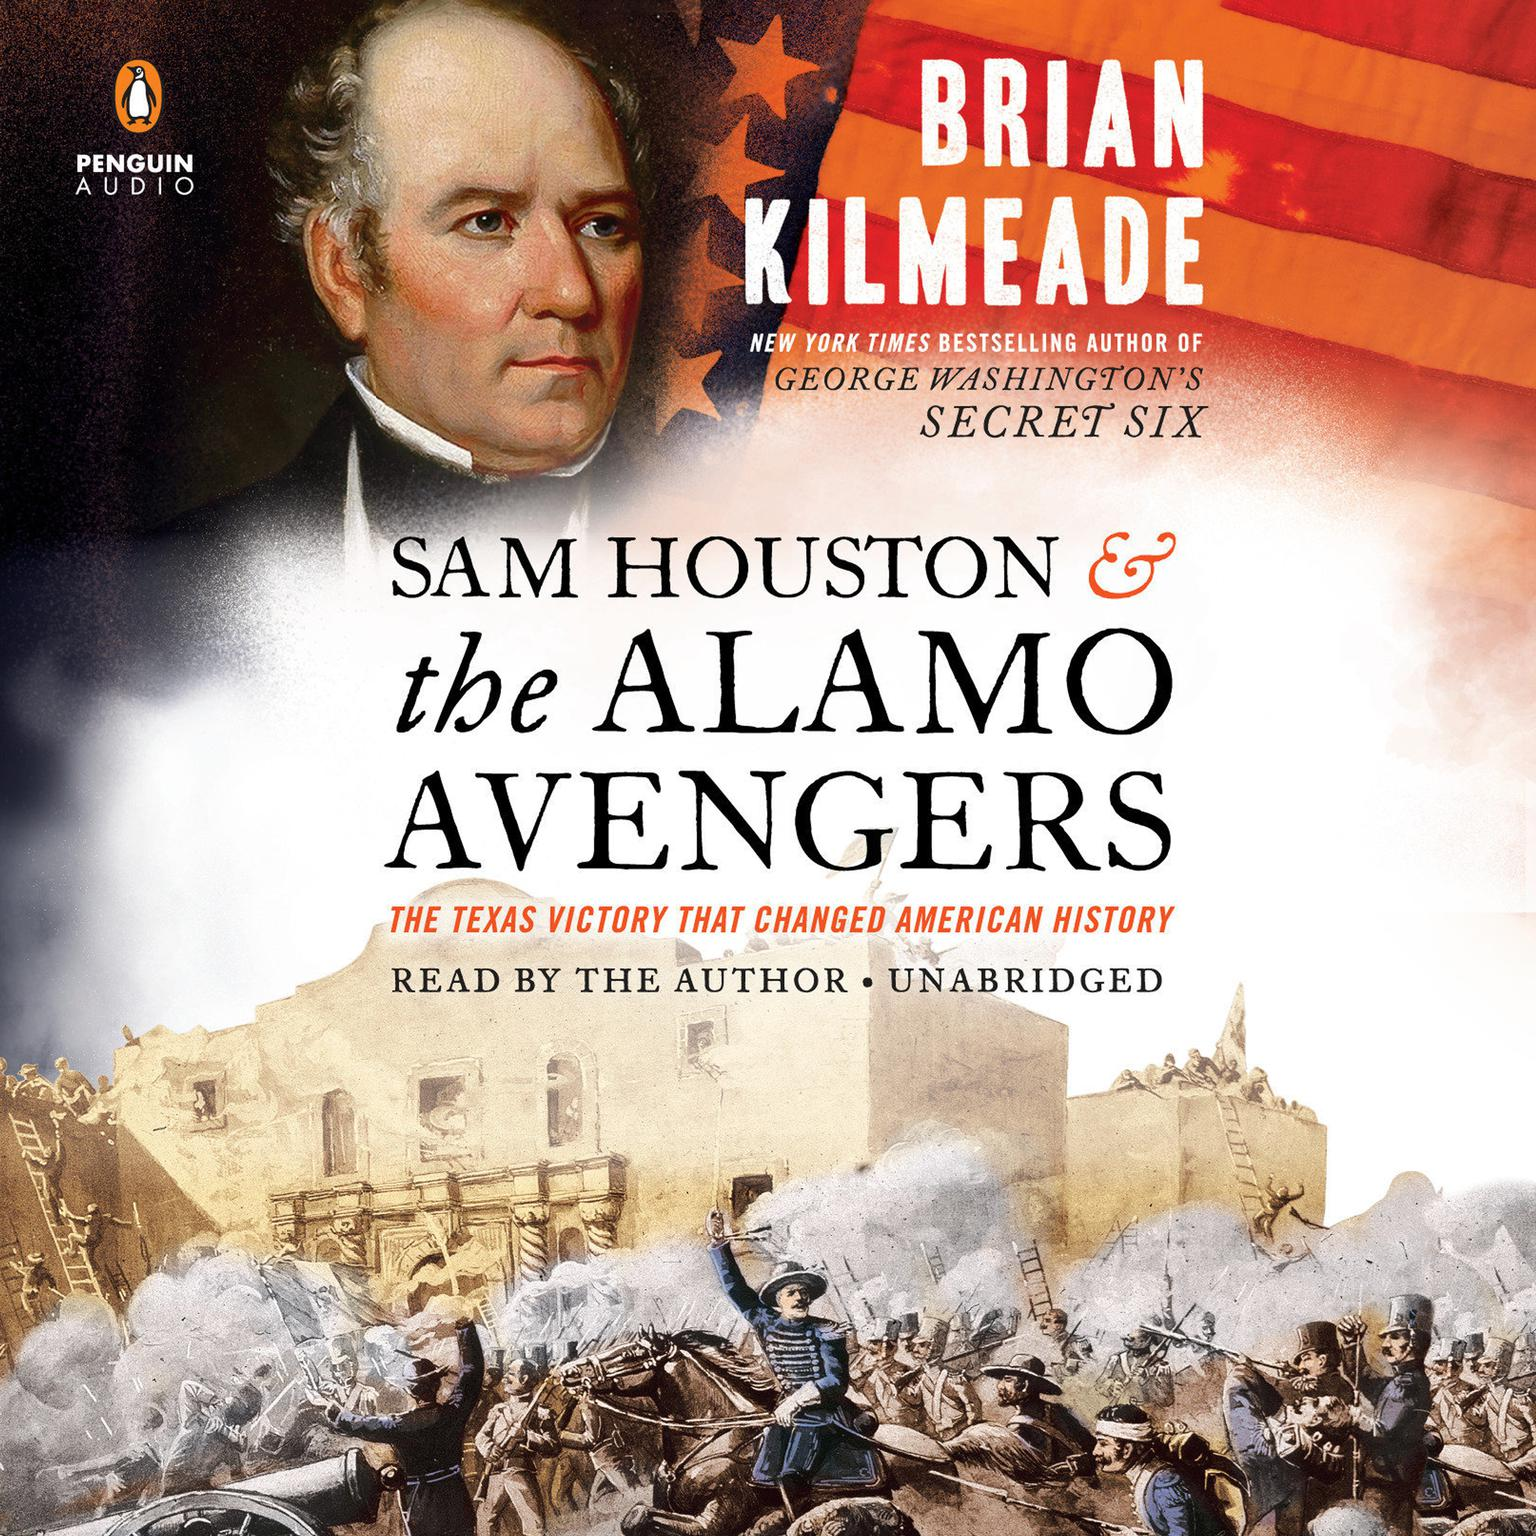 Printable Sam Houston and the Alamo Avengers: The Texas Victory That Changed American History Audiobook Cover Art